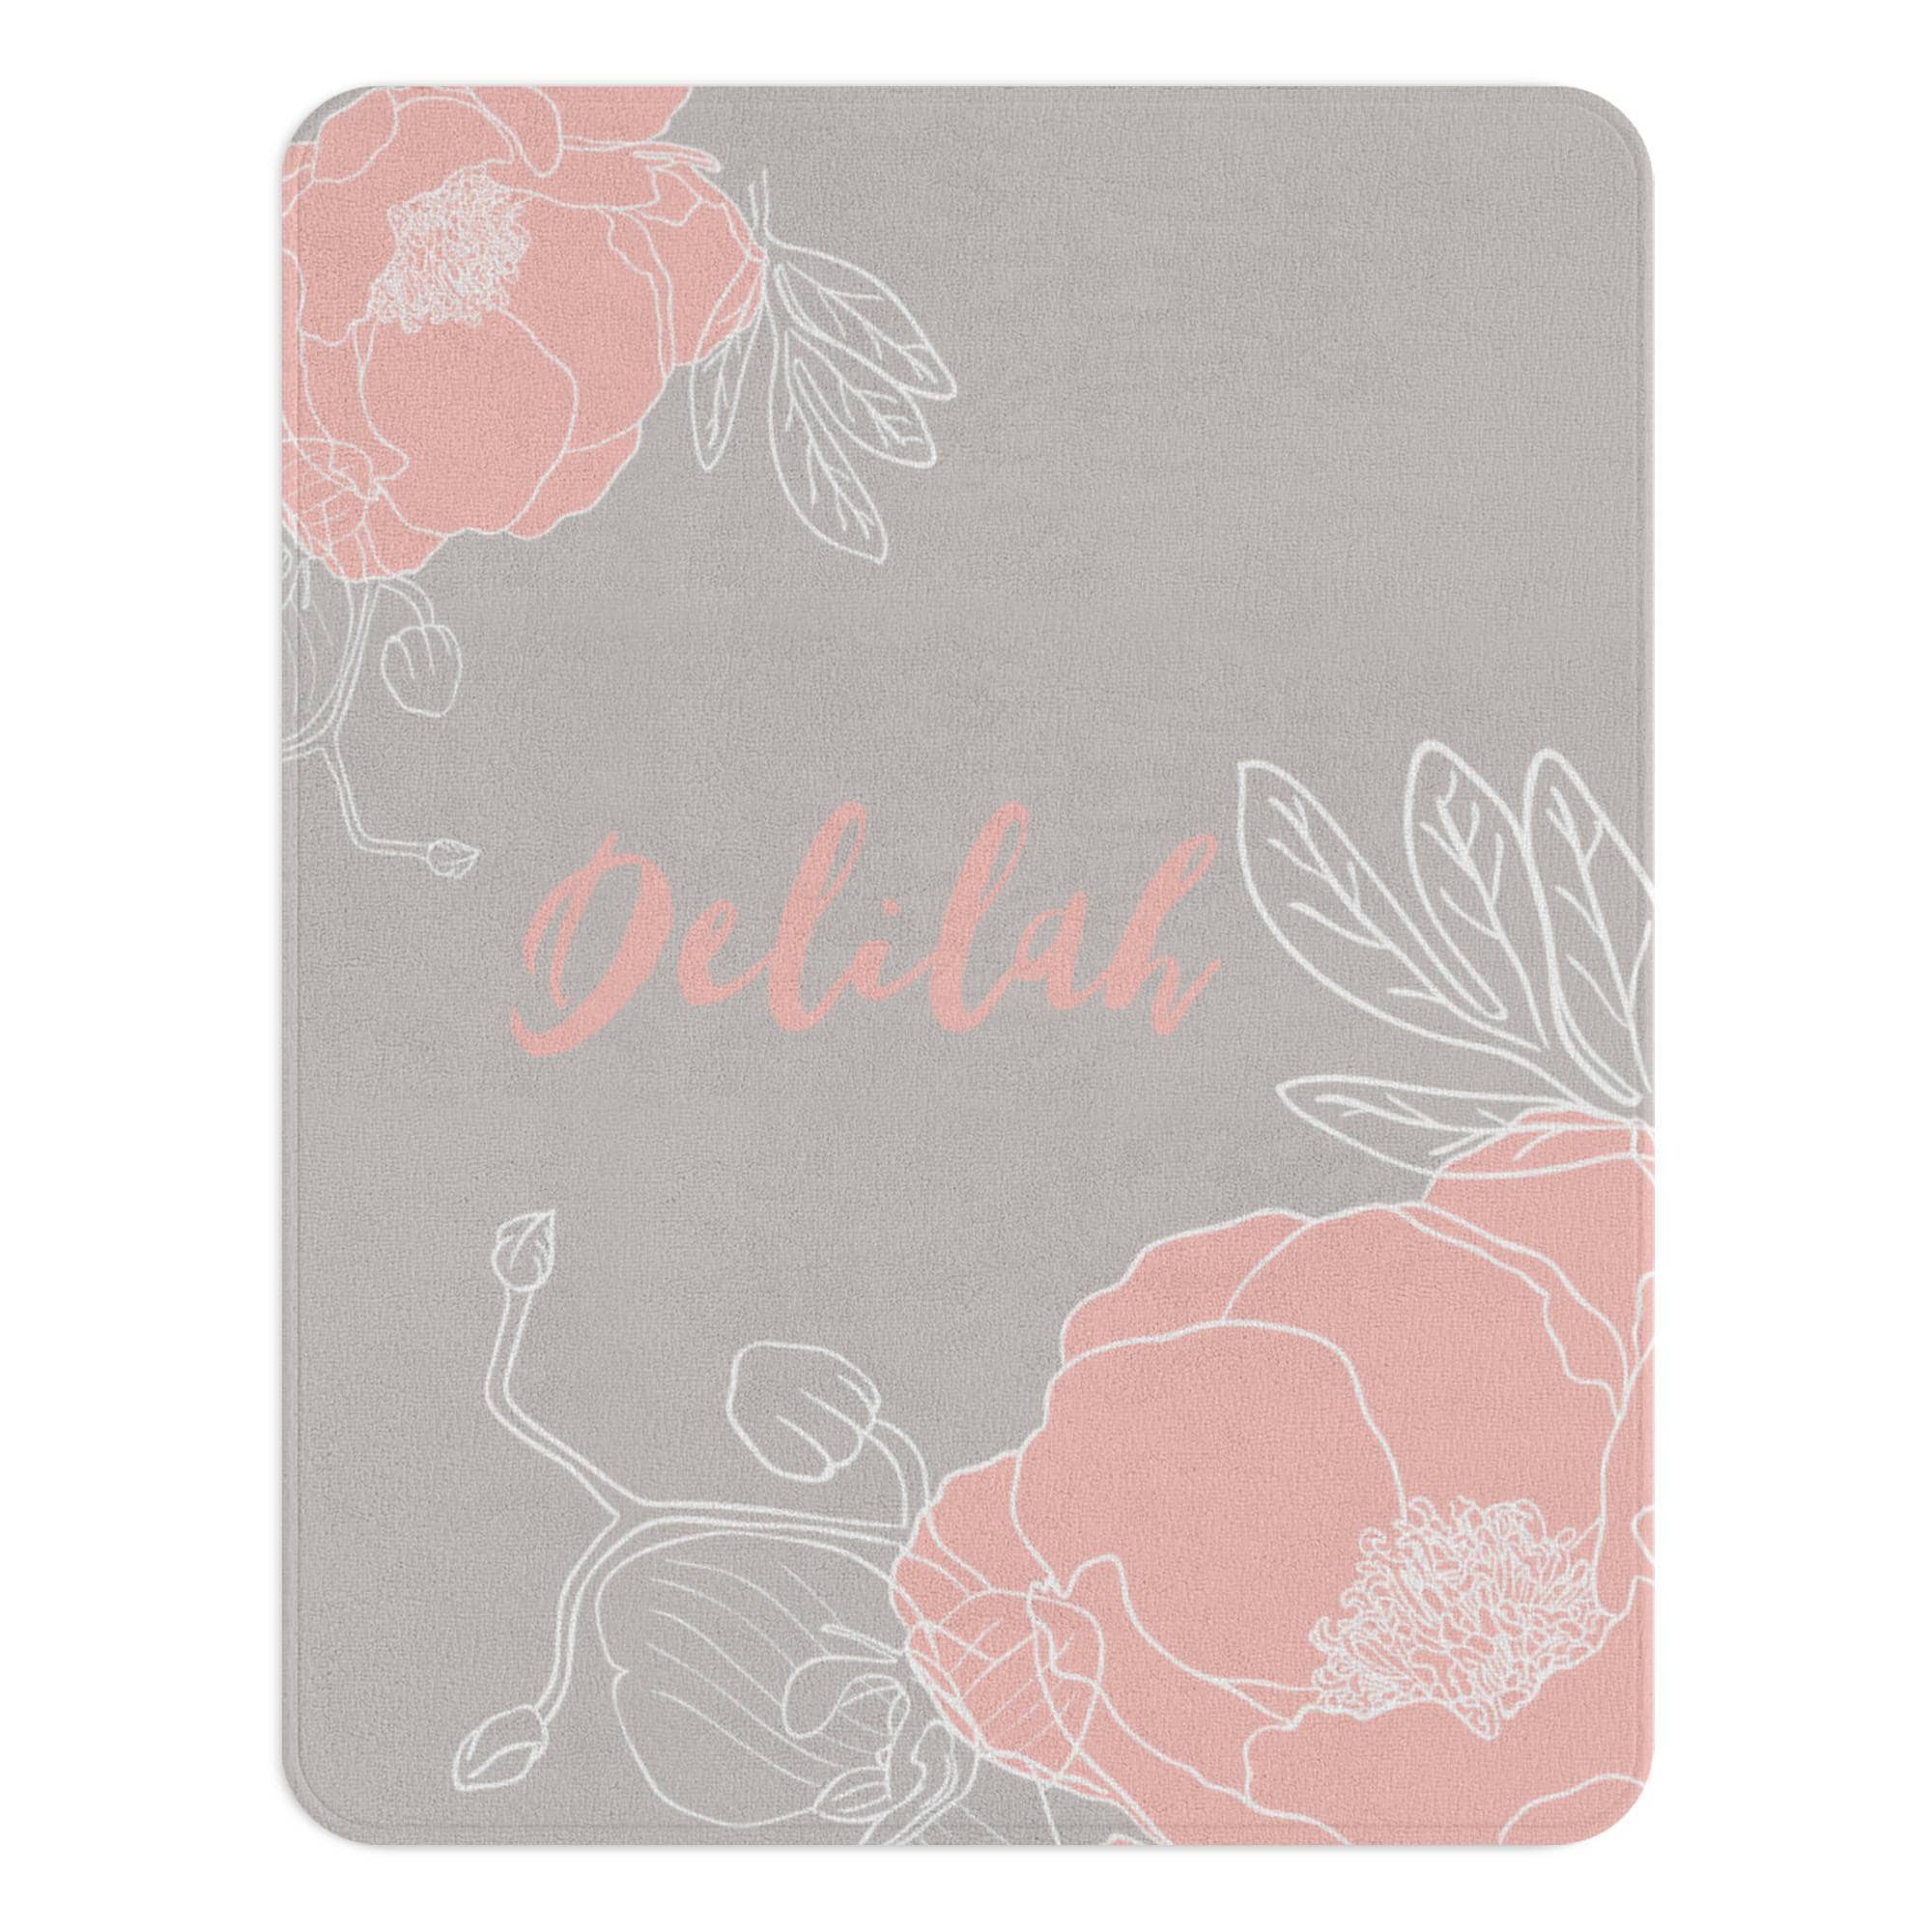 A gray floral rug with a blush flower illustration on diagonally opposite corners. The nursery rug also has a customized monogram in the center.